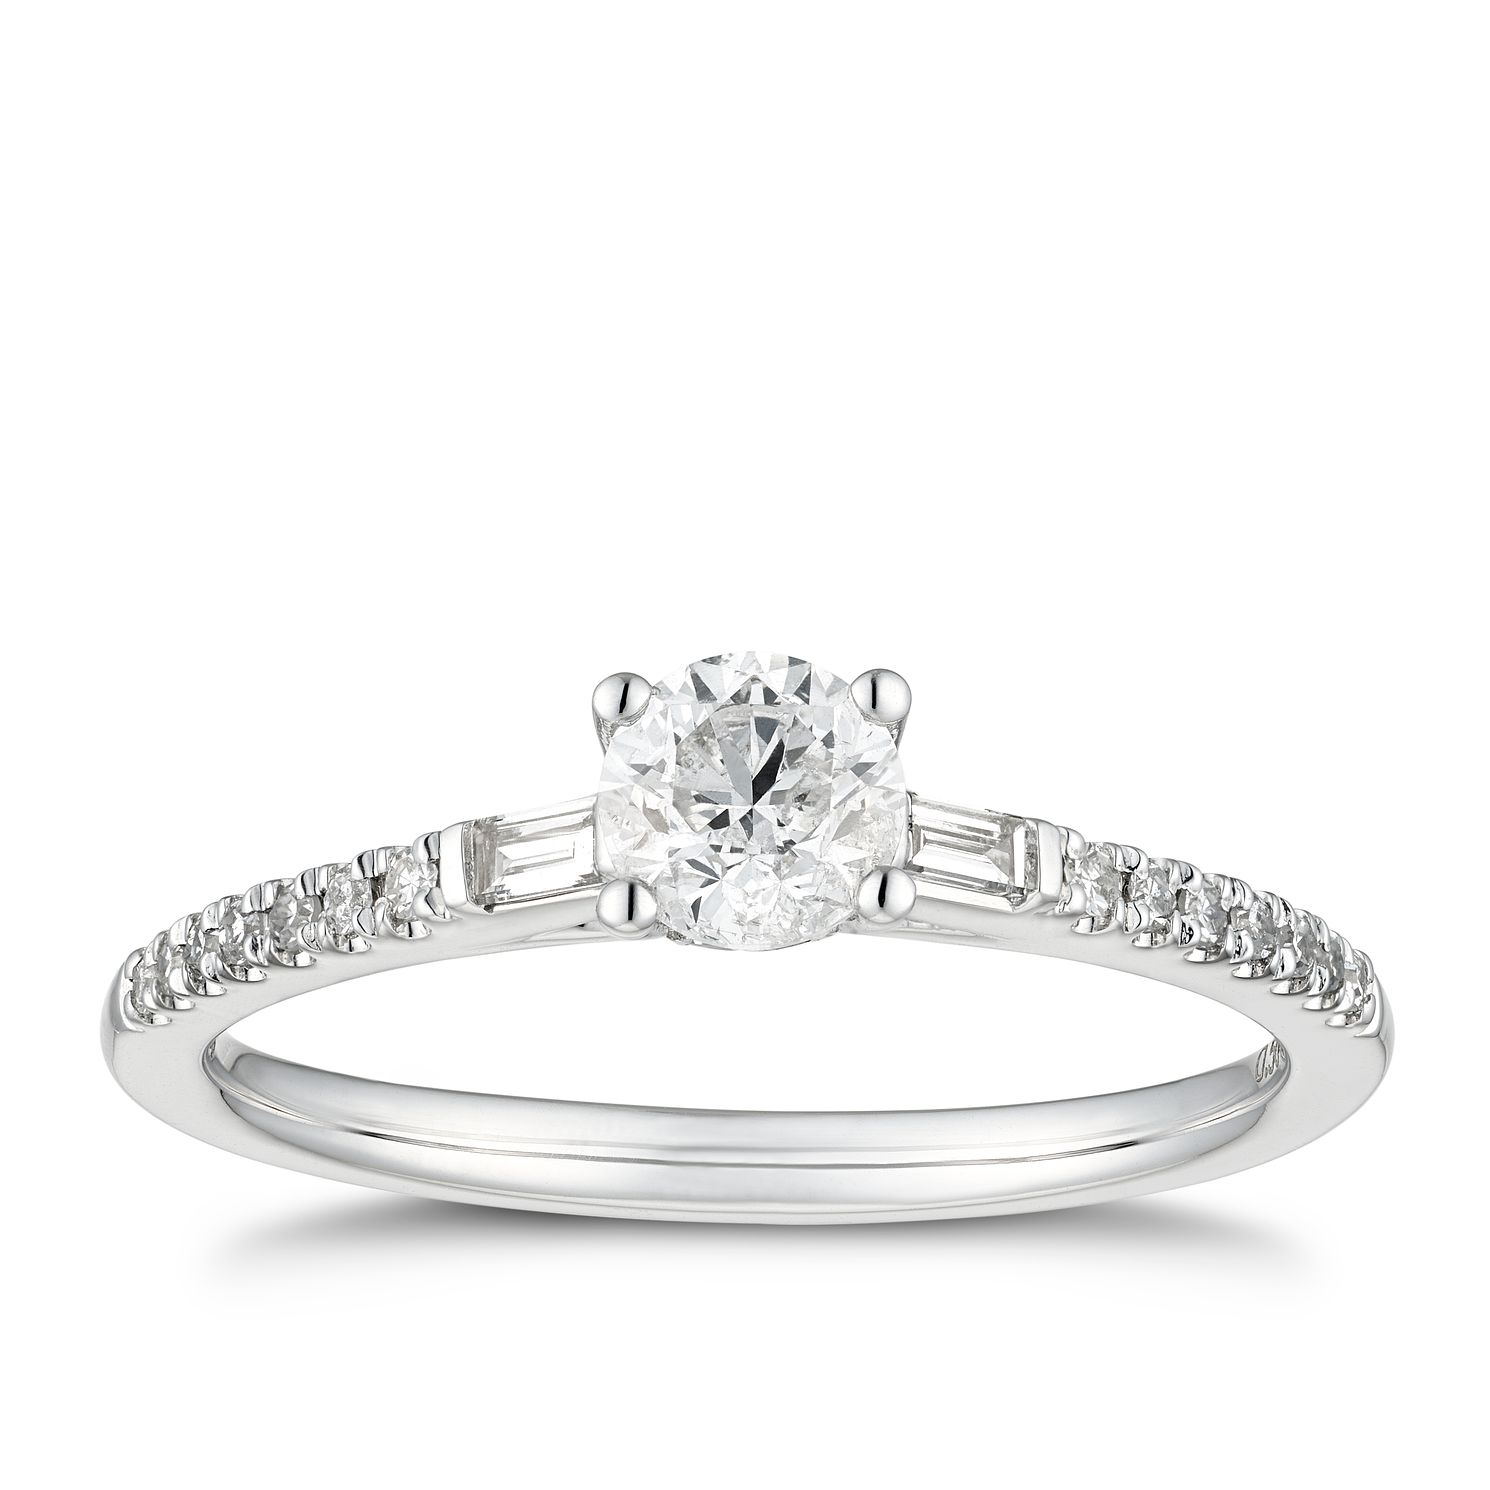 18ct White Gold 0.50ct Total Diamond Ring - Product number 5936934